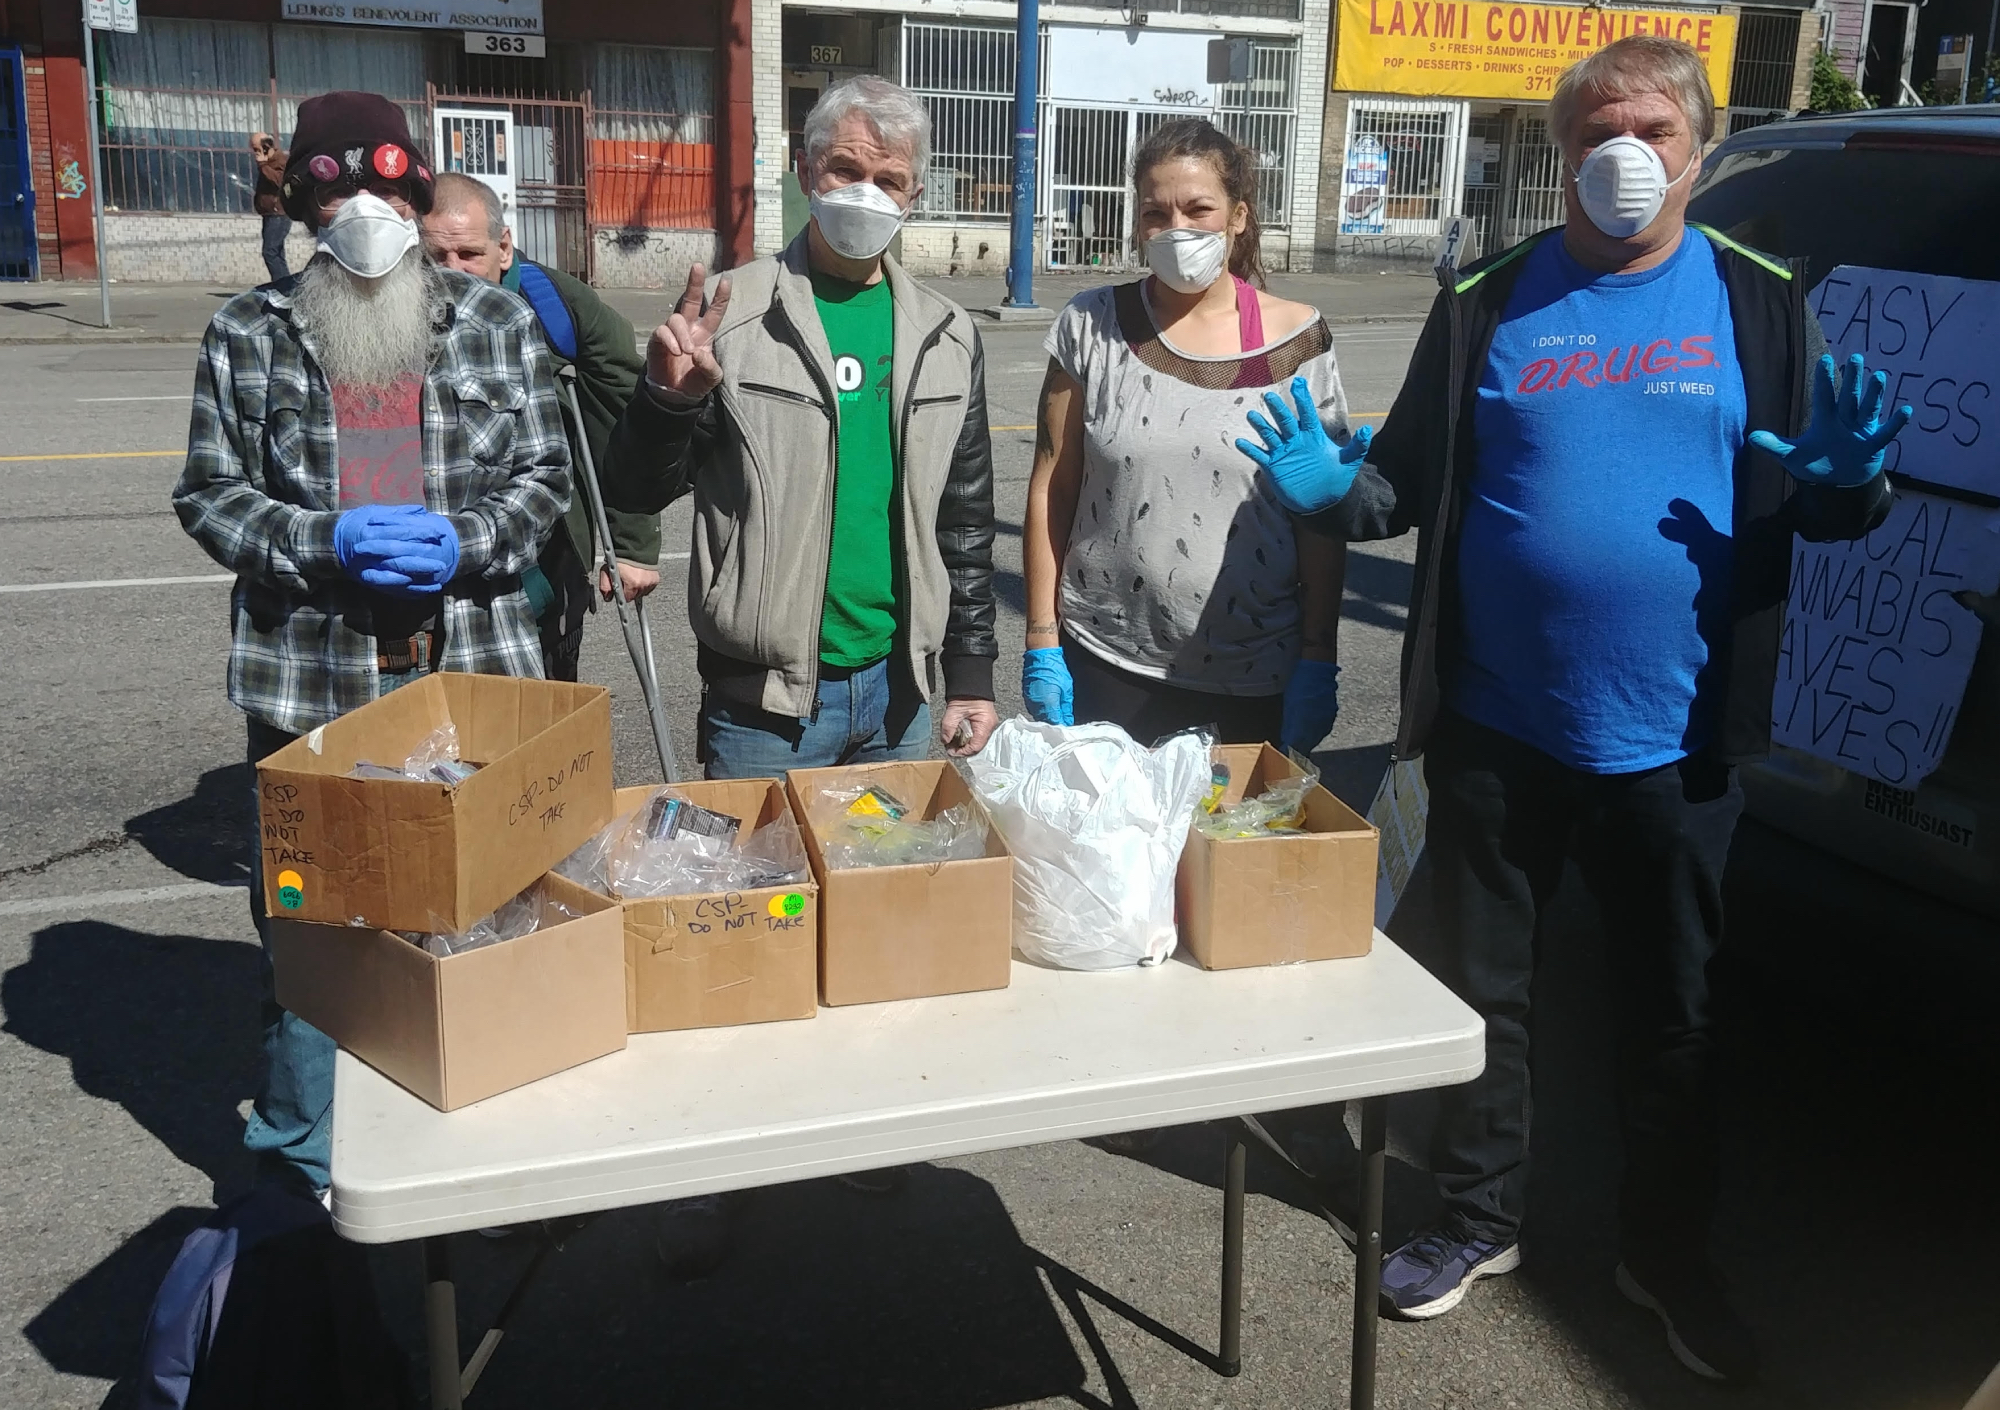 DTES cannabis charity deemed essential service during COVID-19 pandemic, not overdose crisis